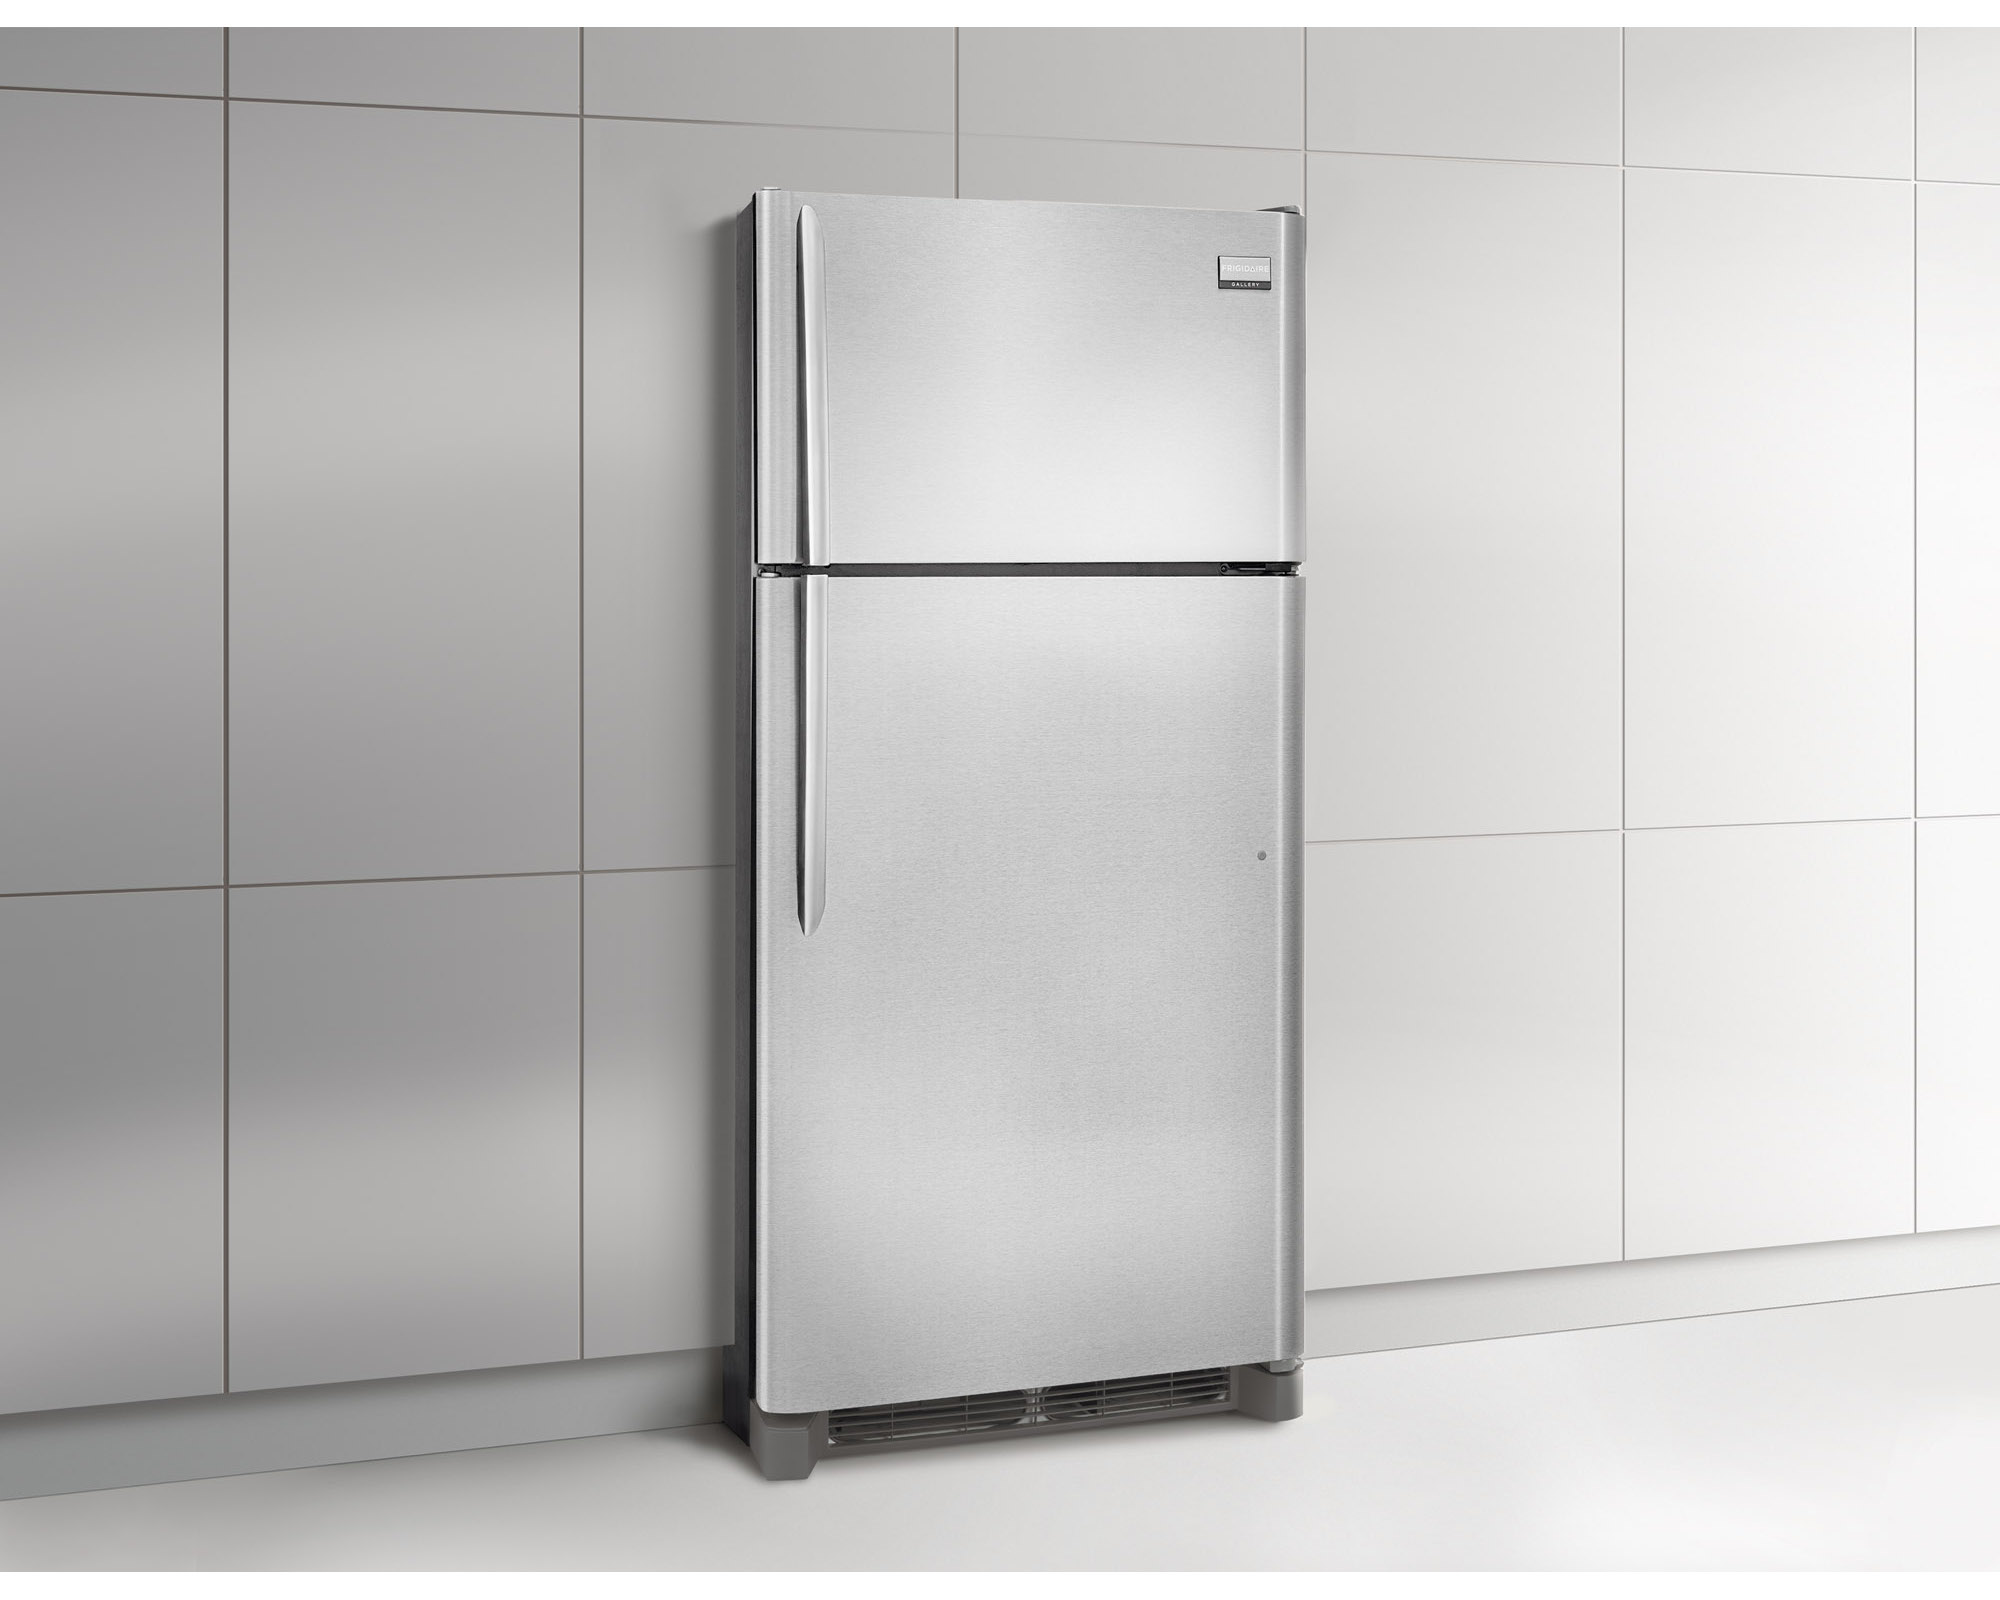 Frigidaire Gallery FGHI1864QF 18.3 cu. ft. Top Freezer Refrigerator - Stainless Steel